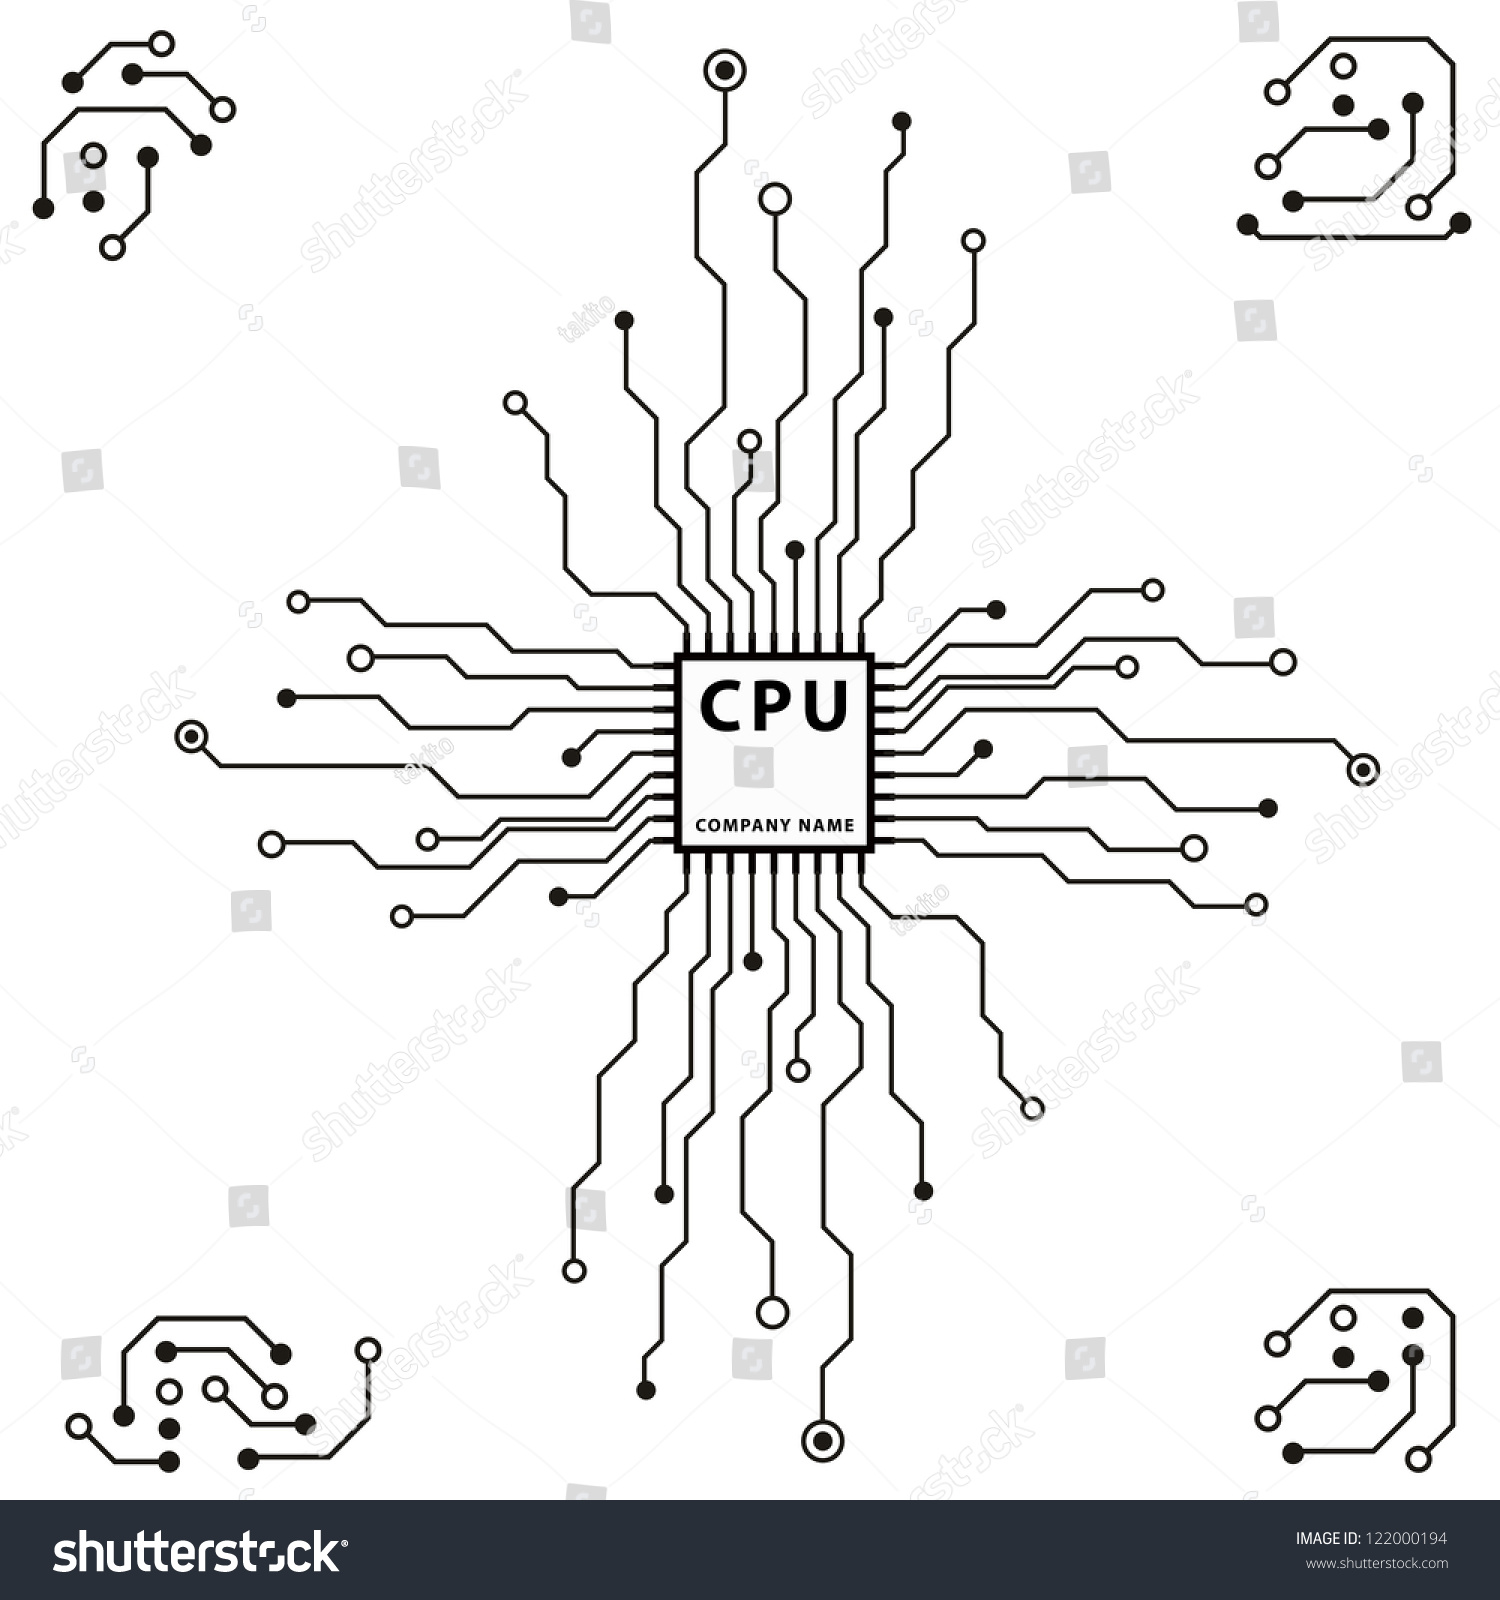 Abstract 2 D Circuit Board Cpu Design Stock Vector (Royalty Free ...